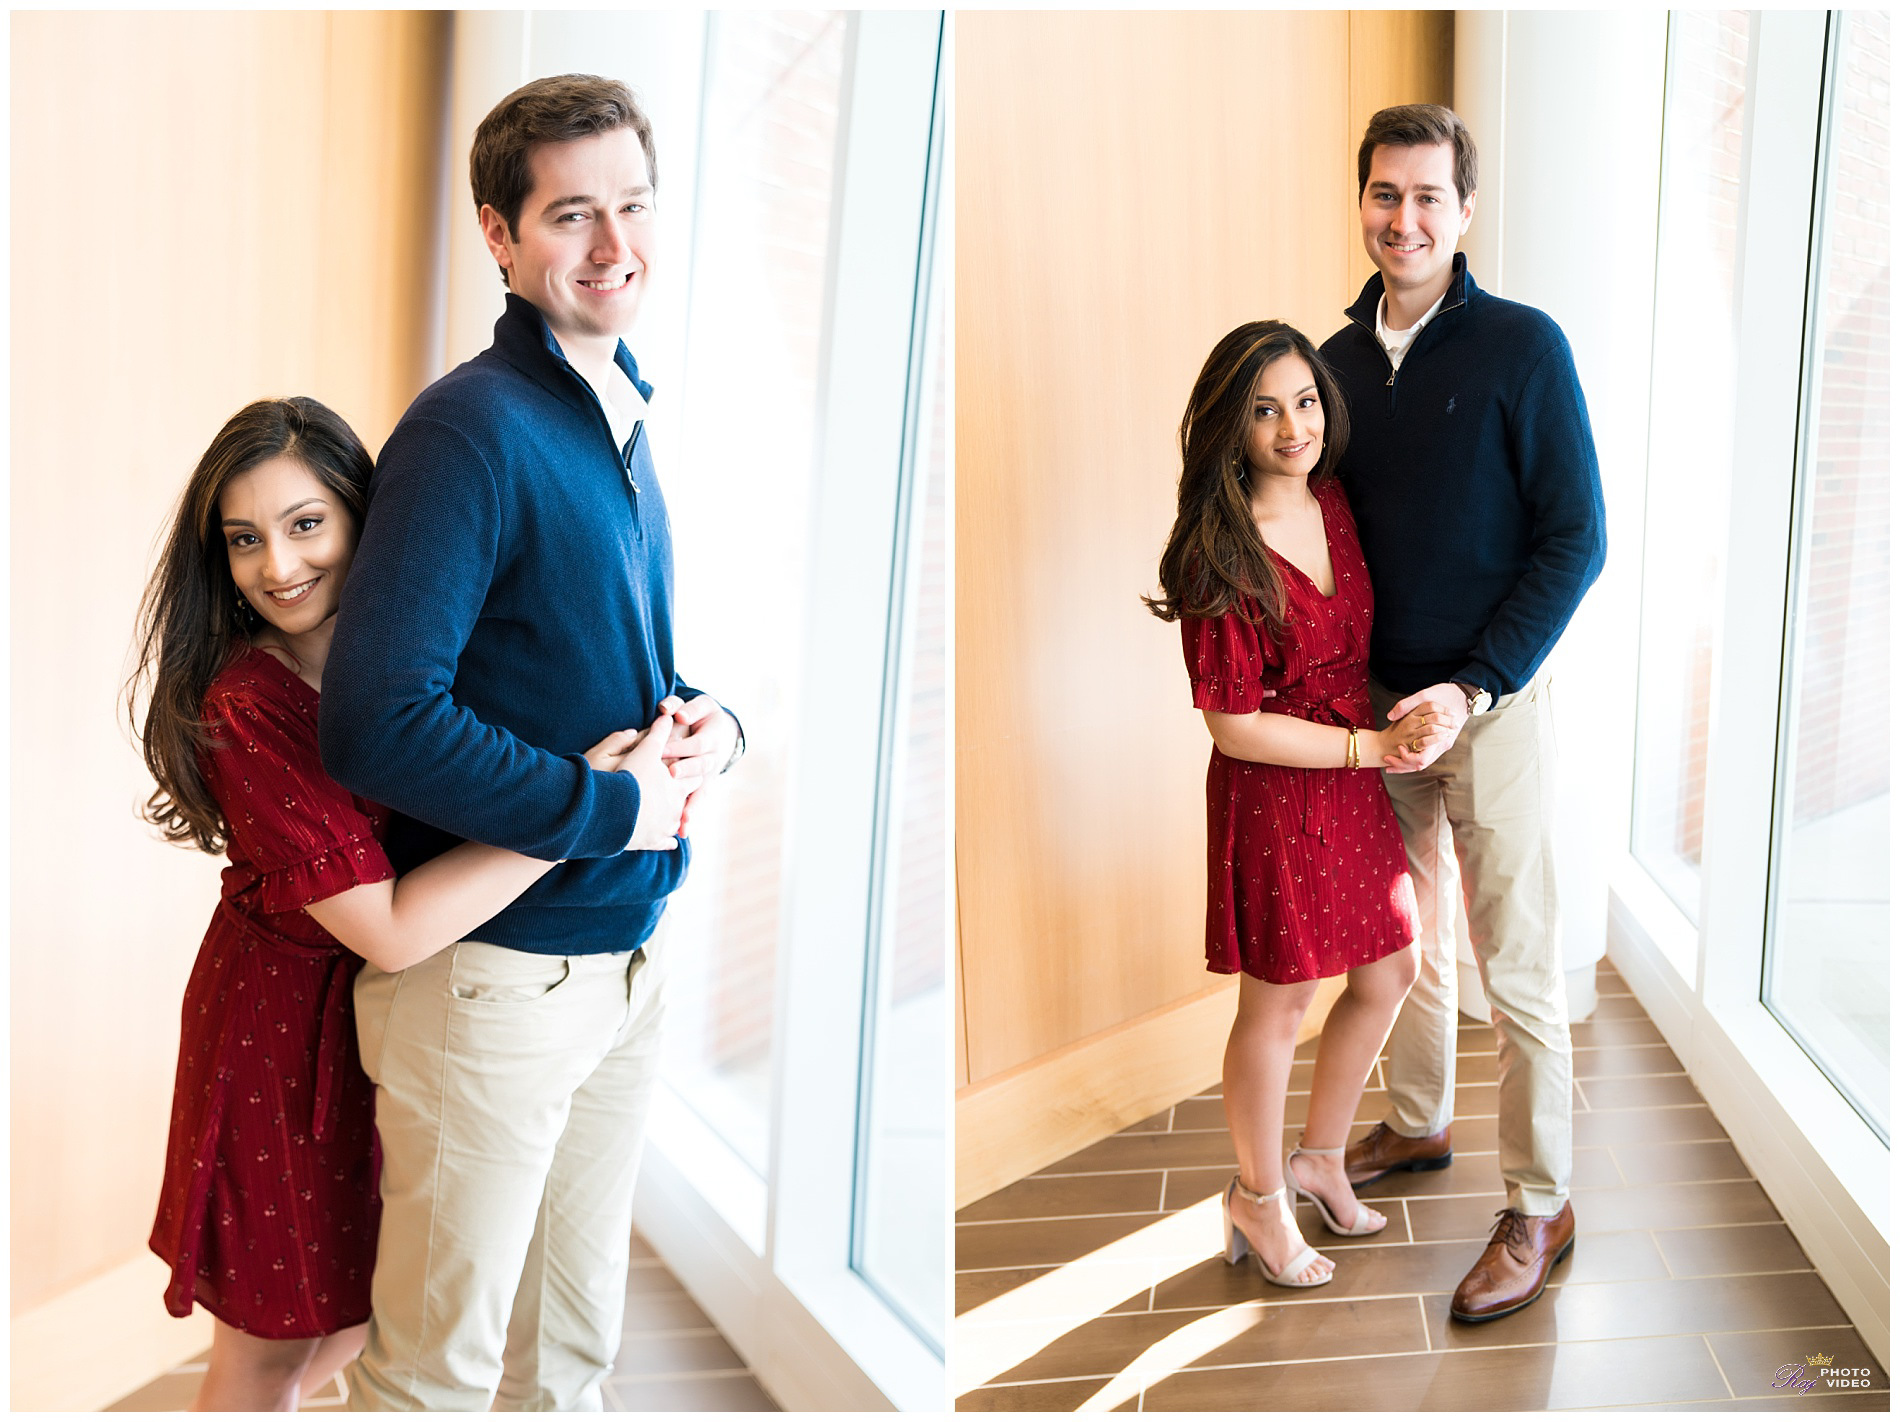 The-College-of-New-Jersey-Engagement-Shoot-Prerna-Kevin3.jpg